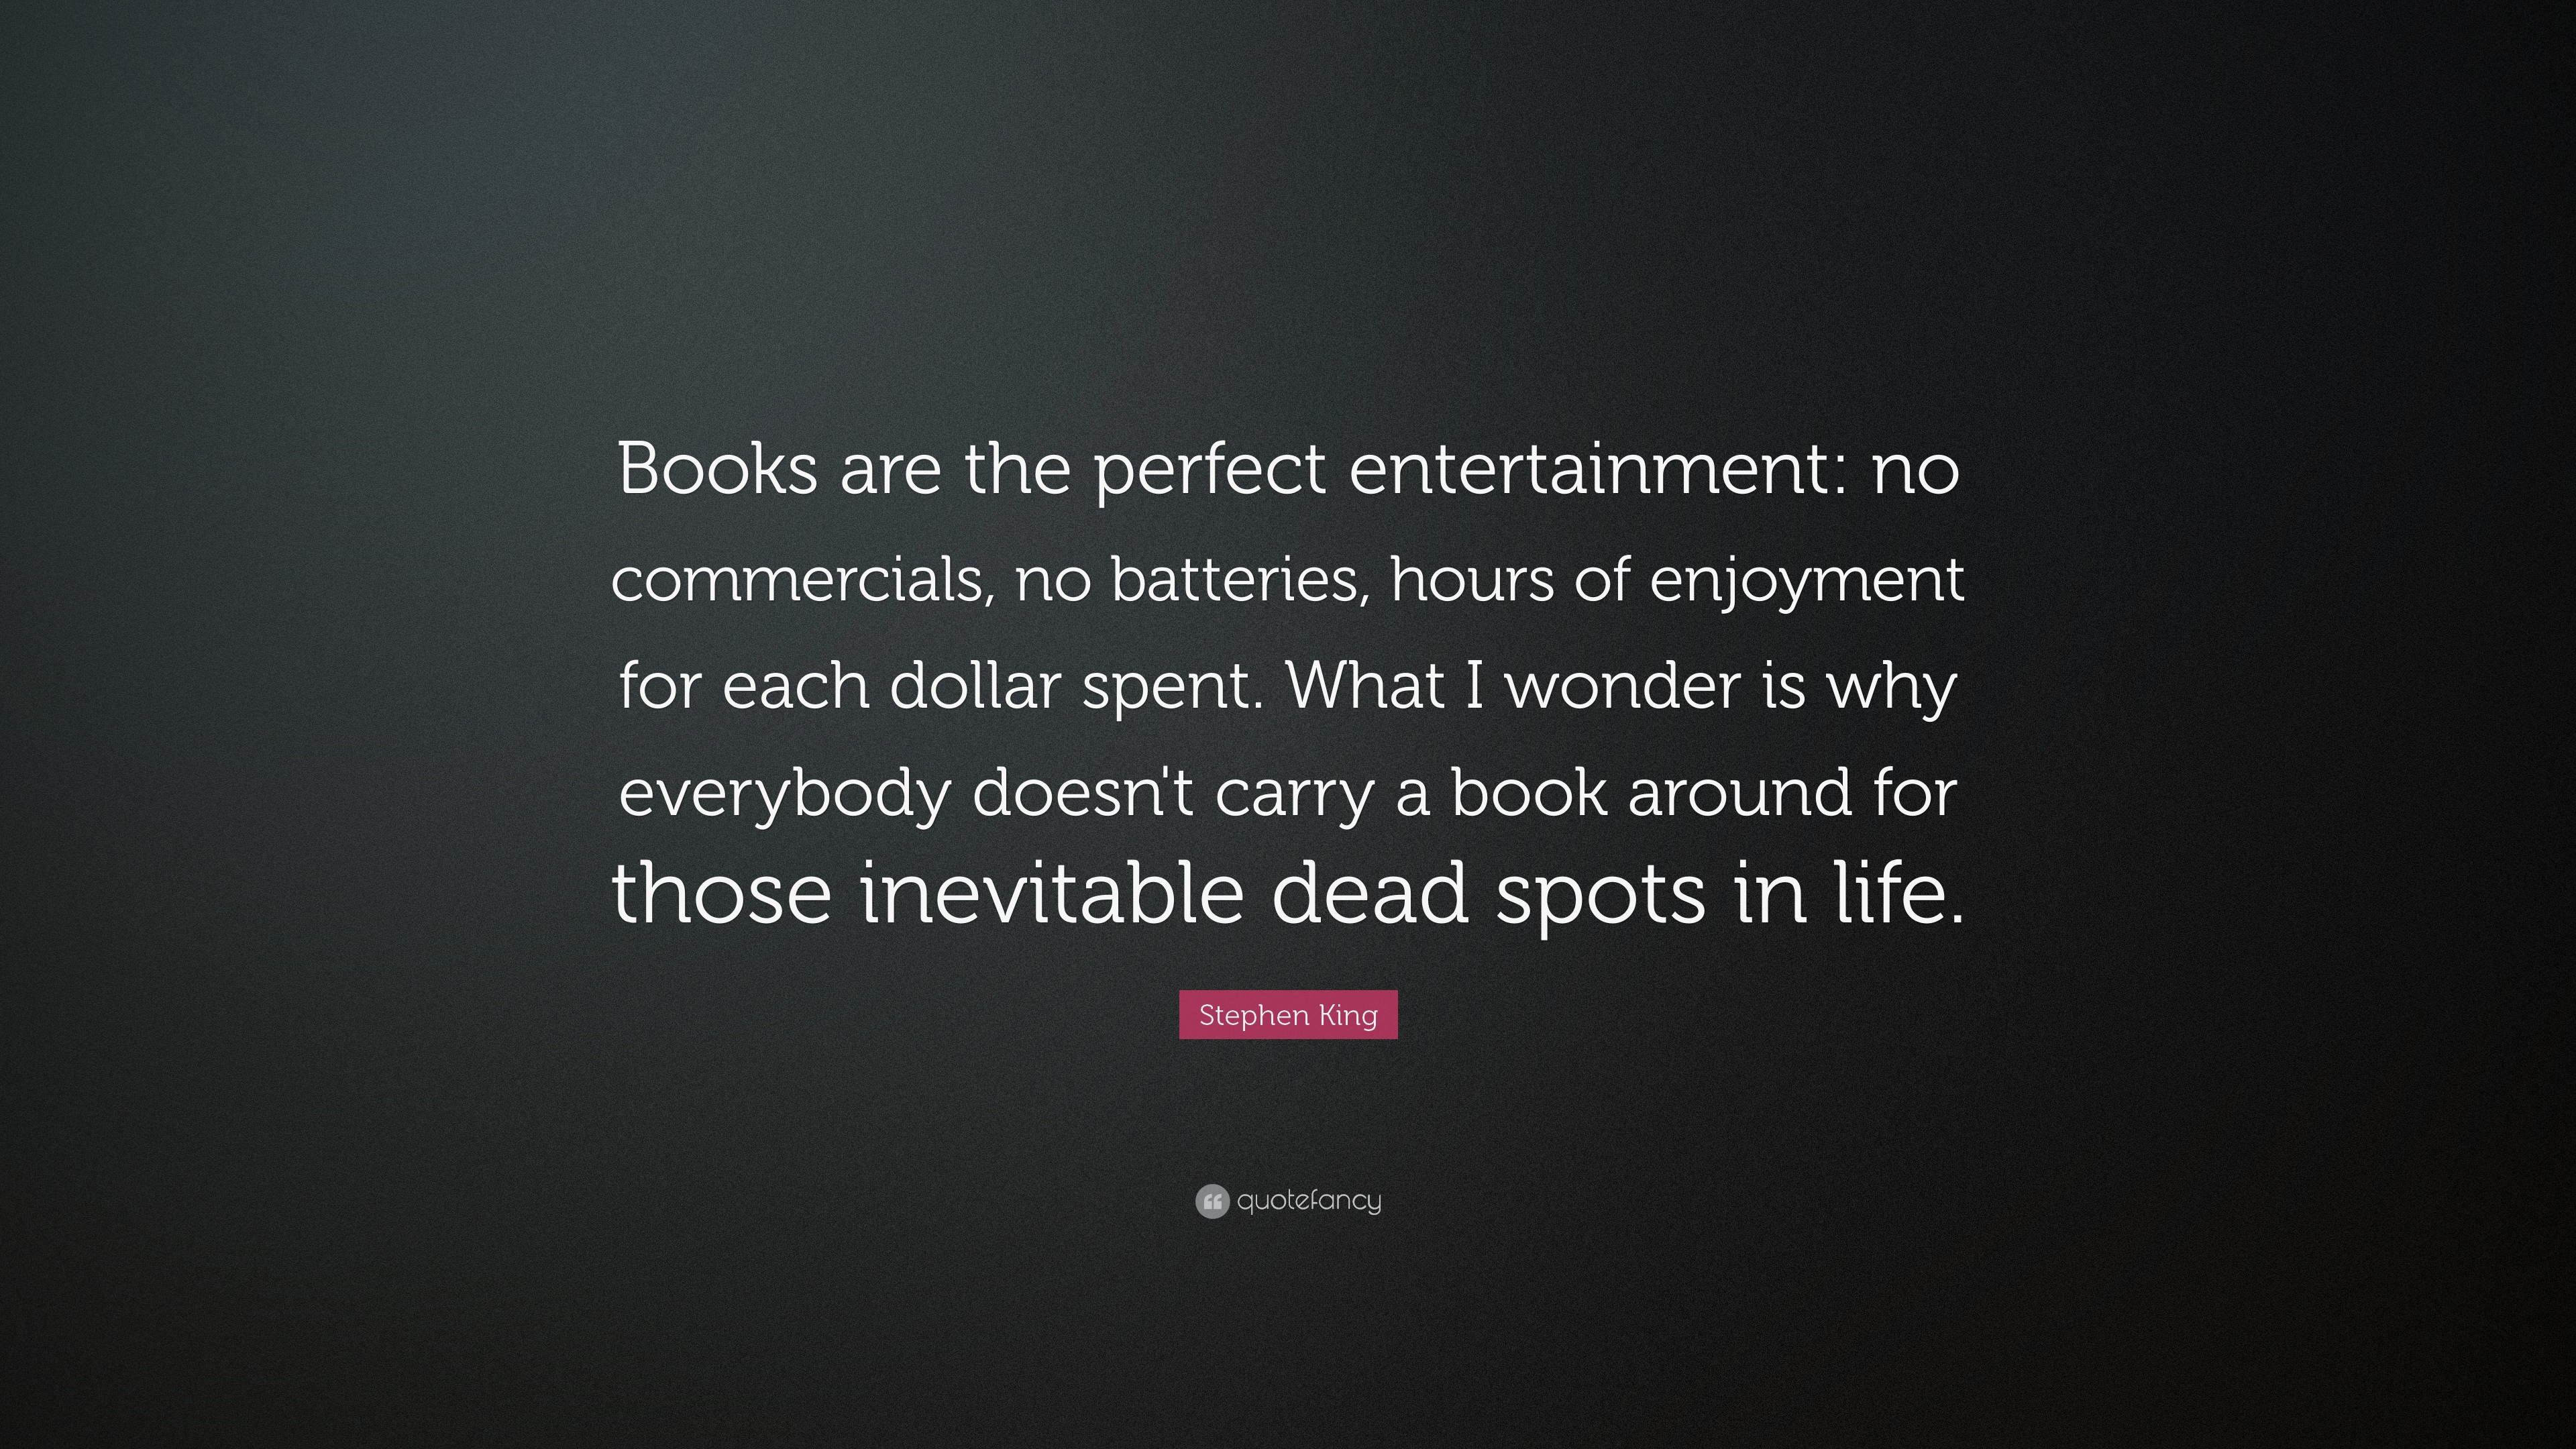 Life Quotes Books Quotes About Books And Reading 22 Wallpapers  Quotefancy